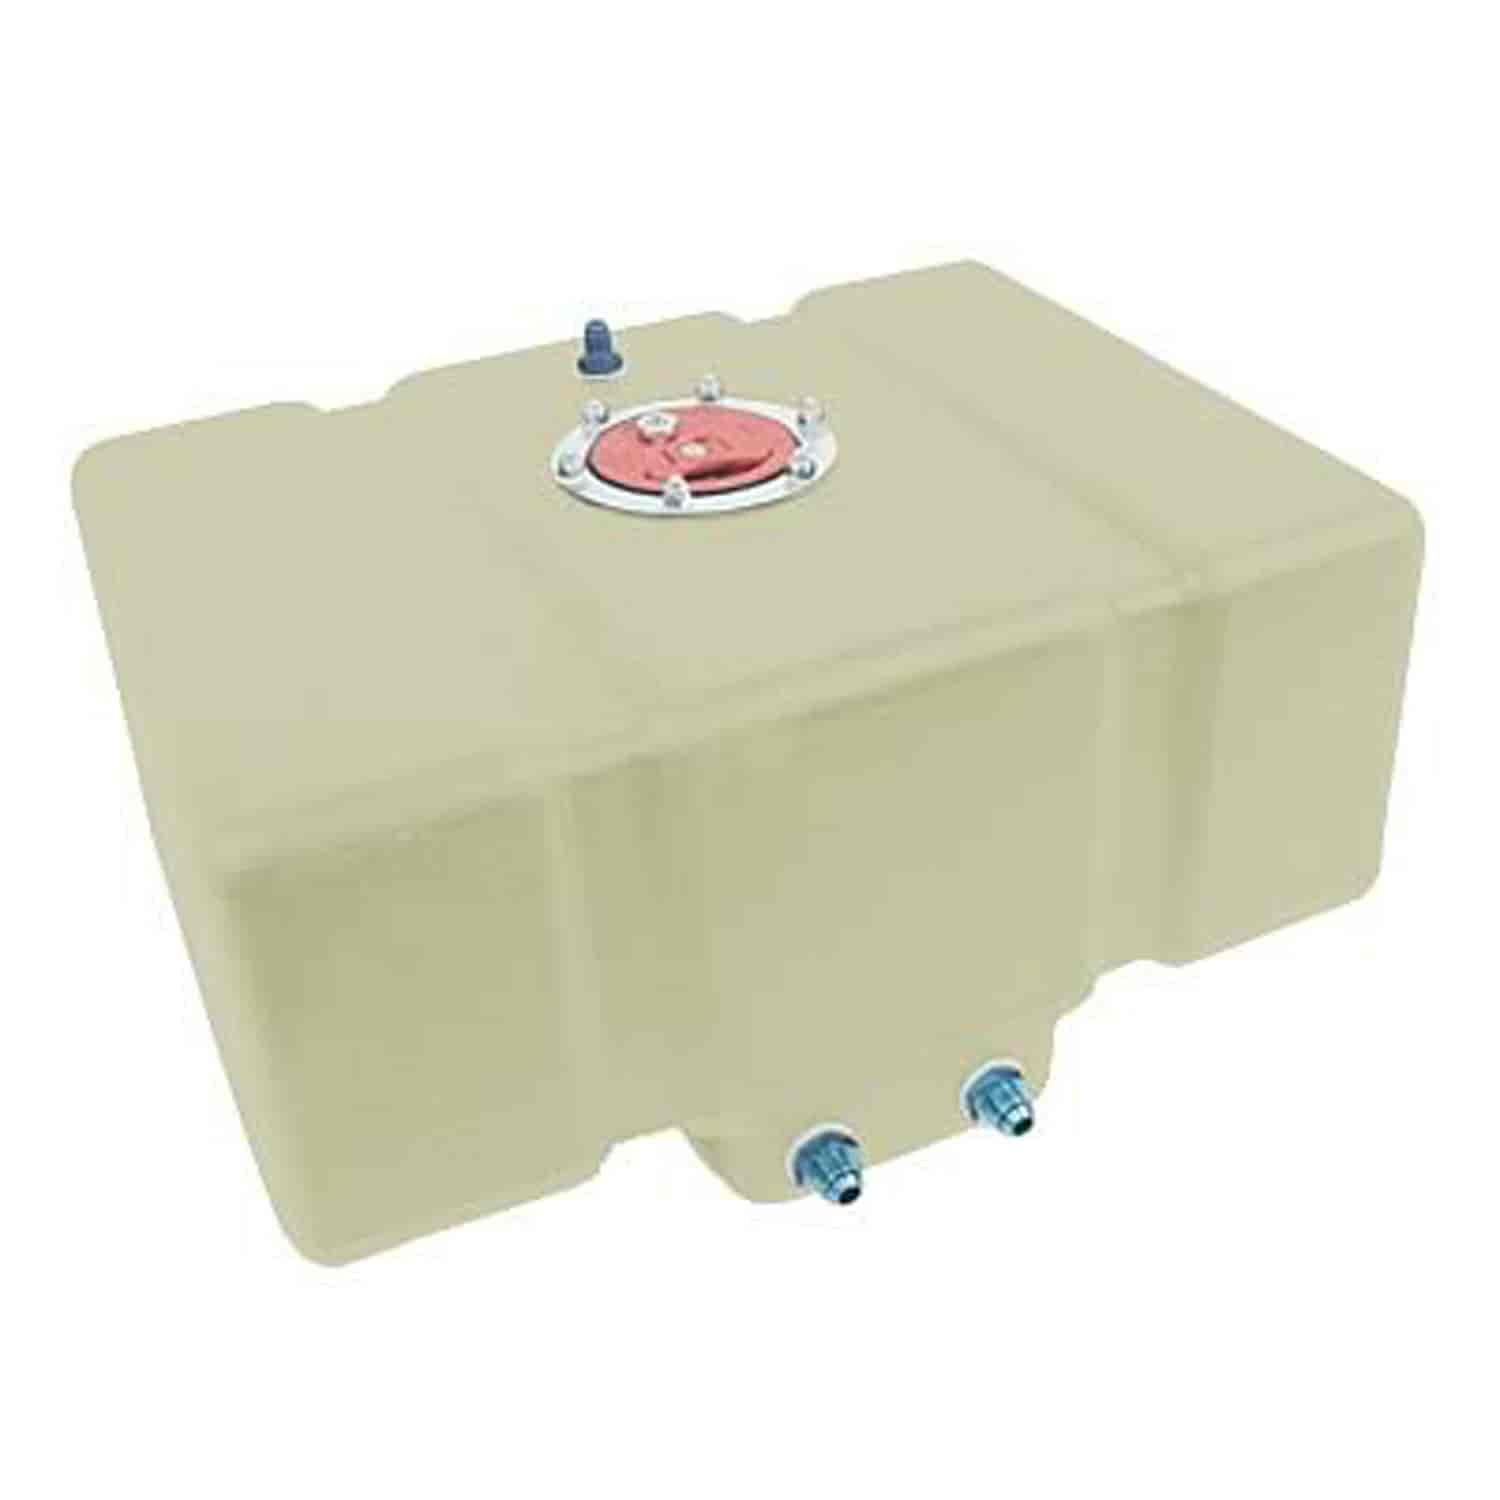 JAZ Products Drag Race Fuel Cell 8-Gallon Horizontal Natural with Foam